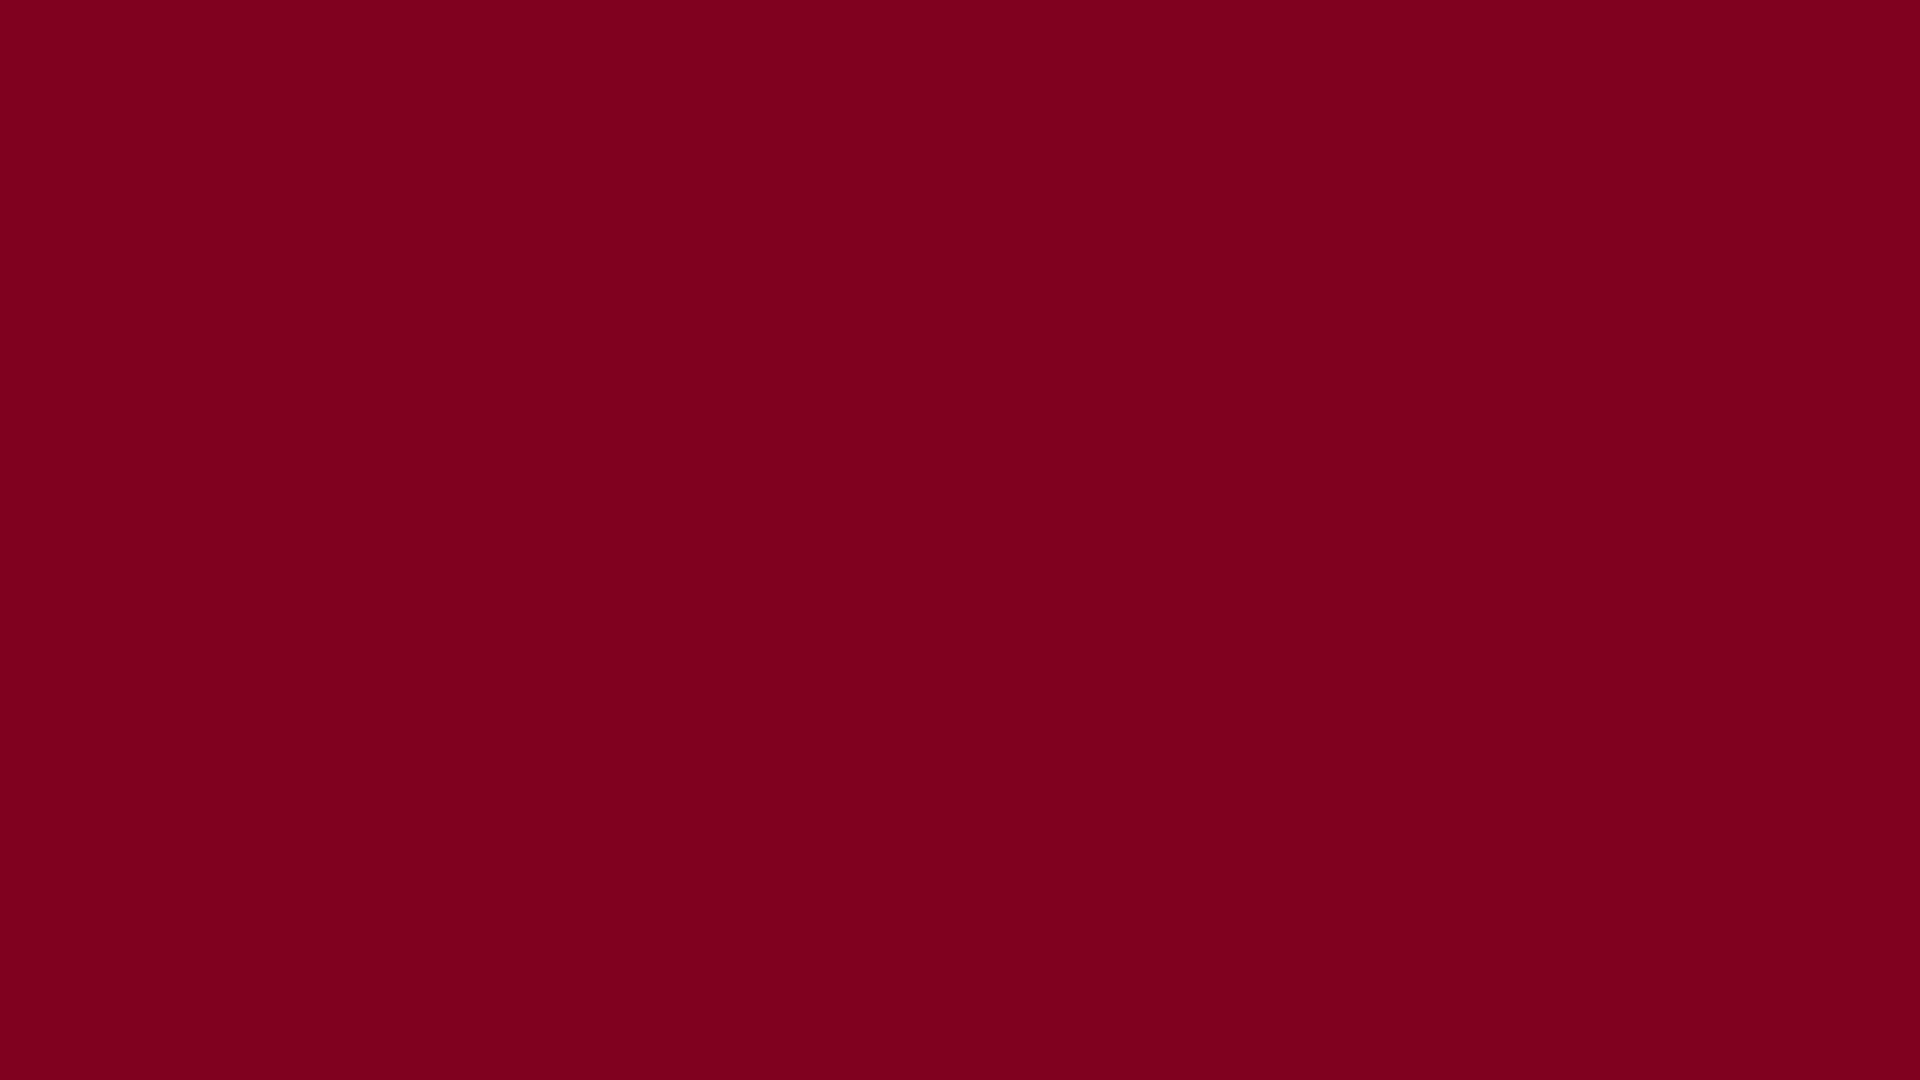 1920x1080 Burgundy Solid Color Background